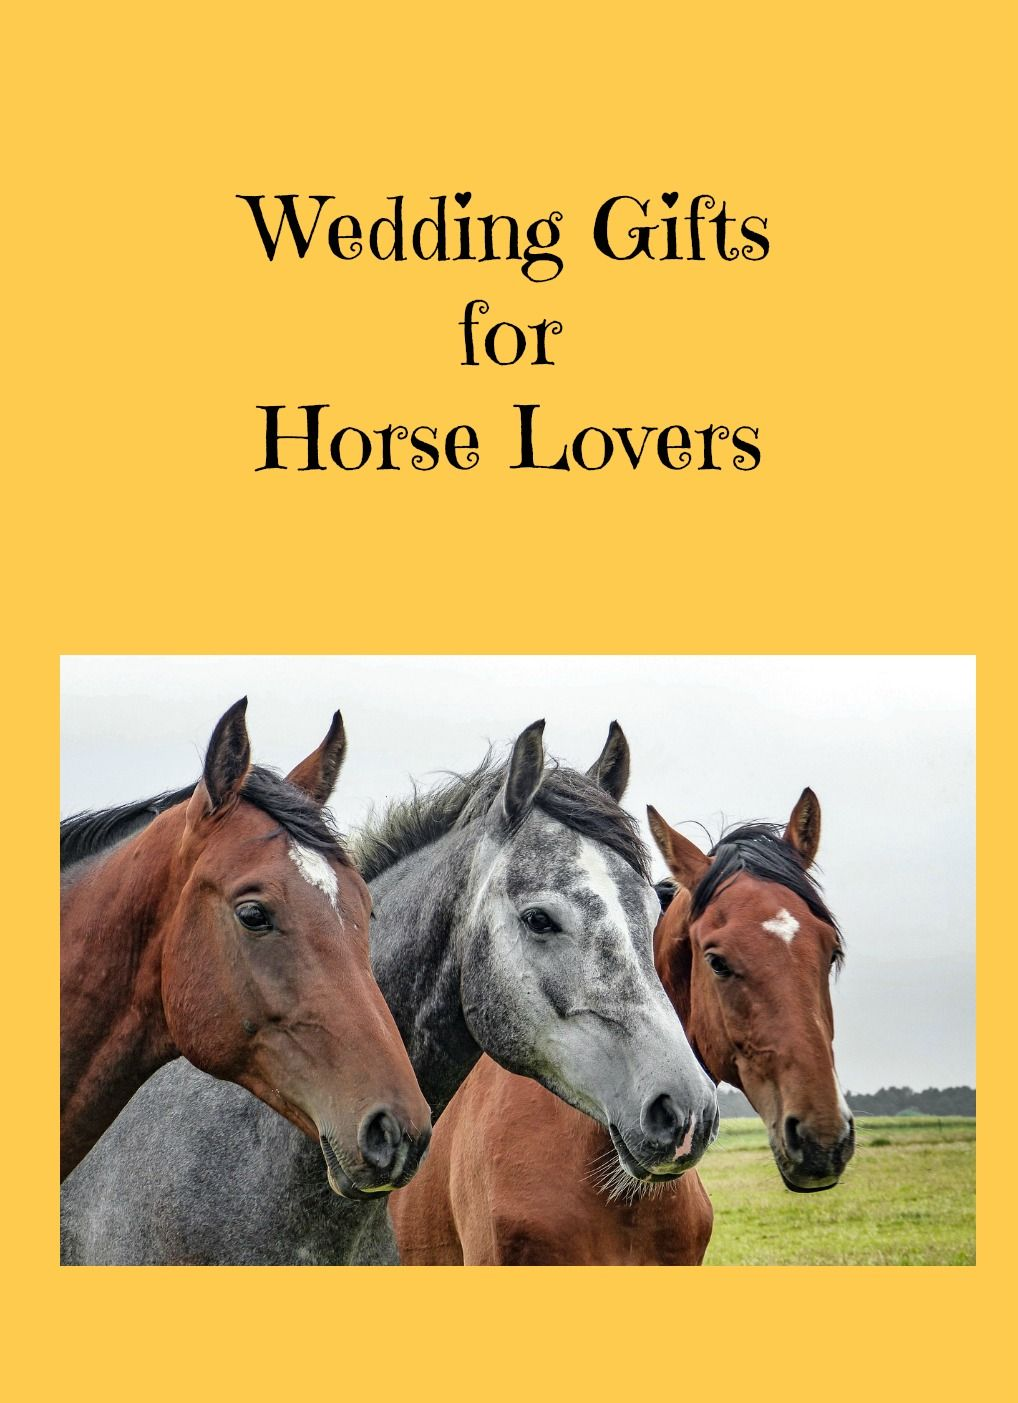 Best wedding gifts for horse lovers wedding gifts gifts